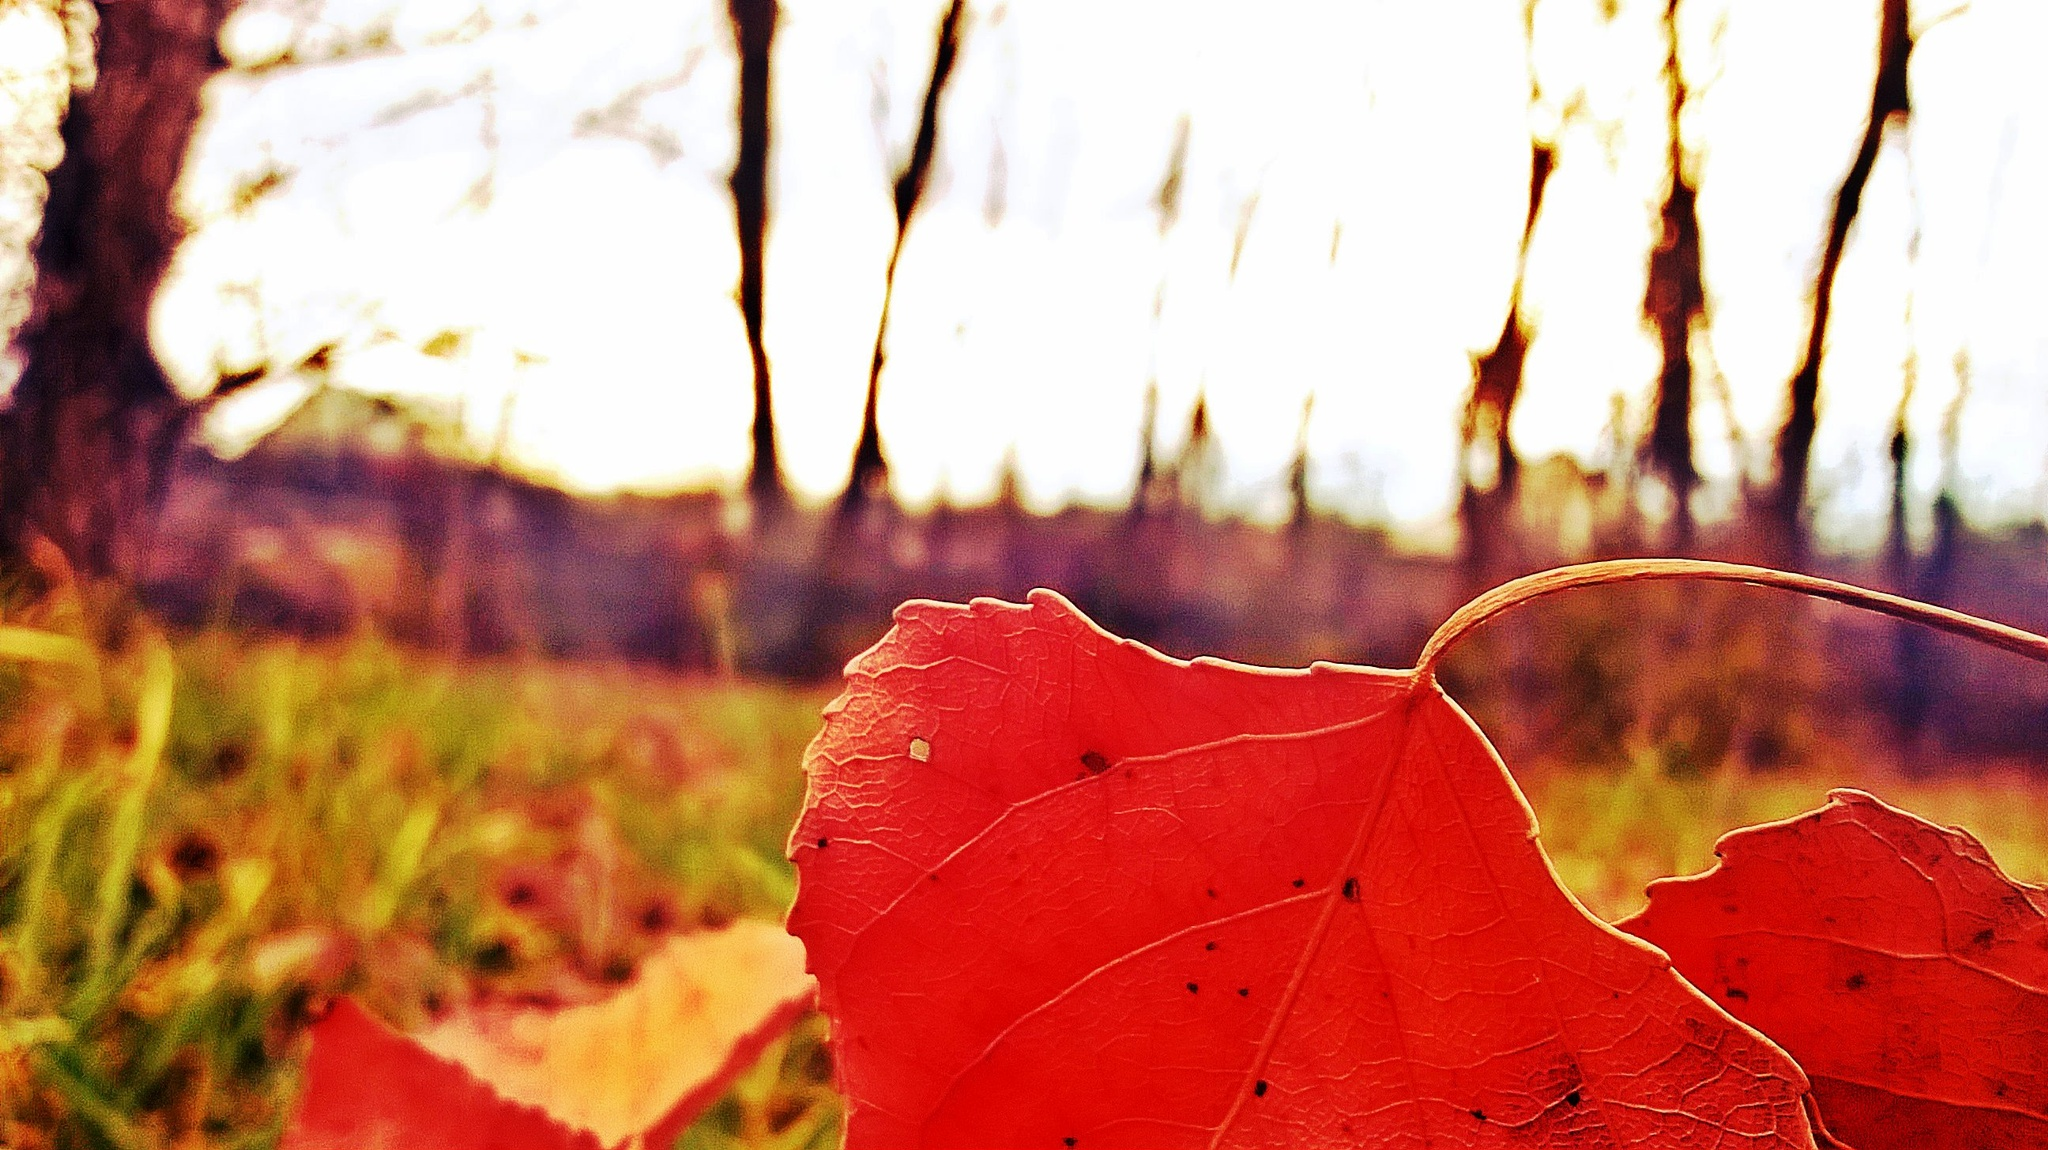 Autumn time by Autumn Leaves